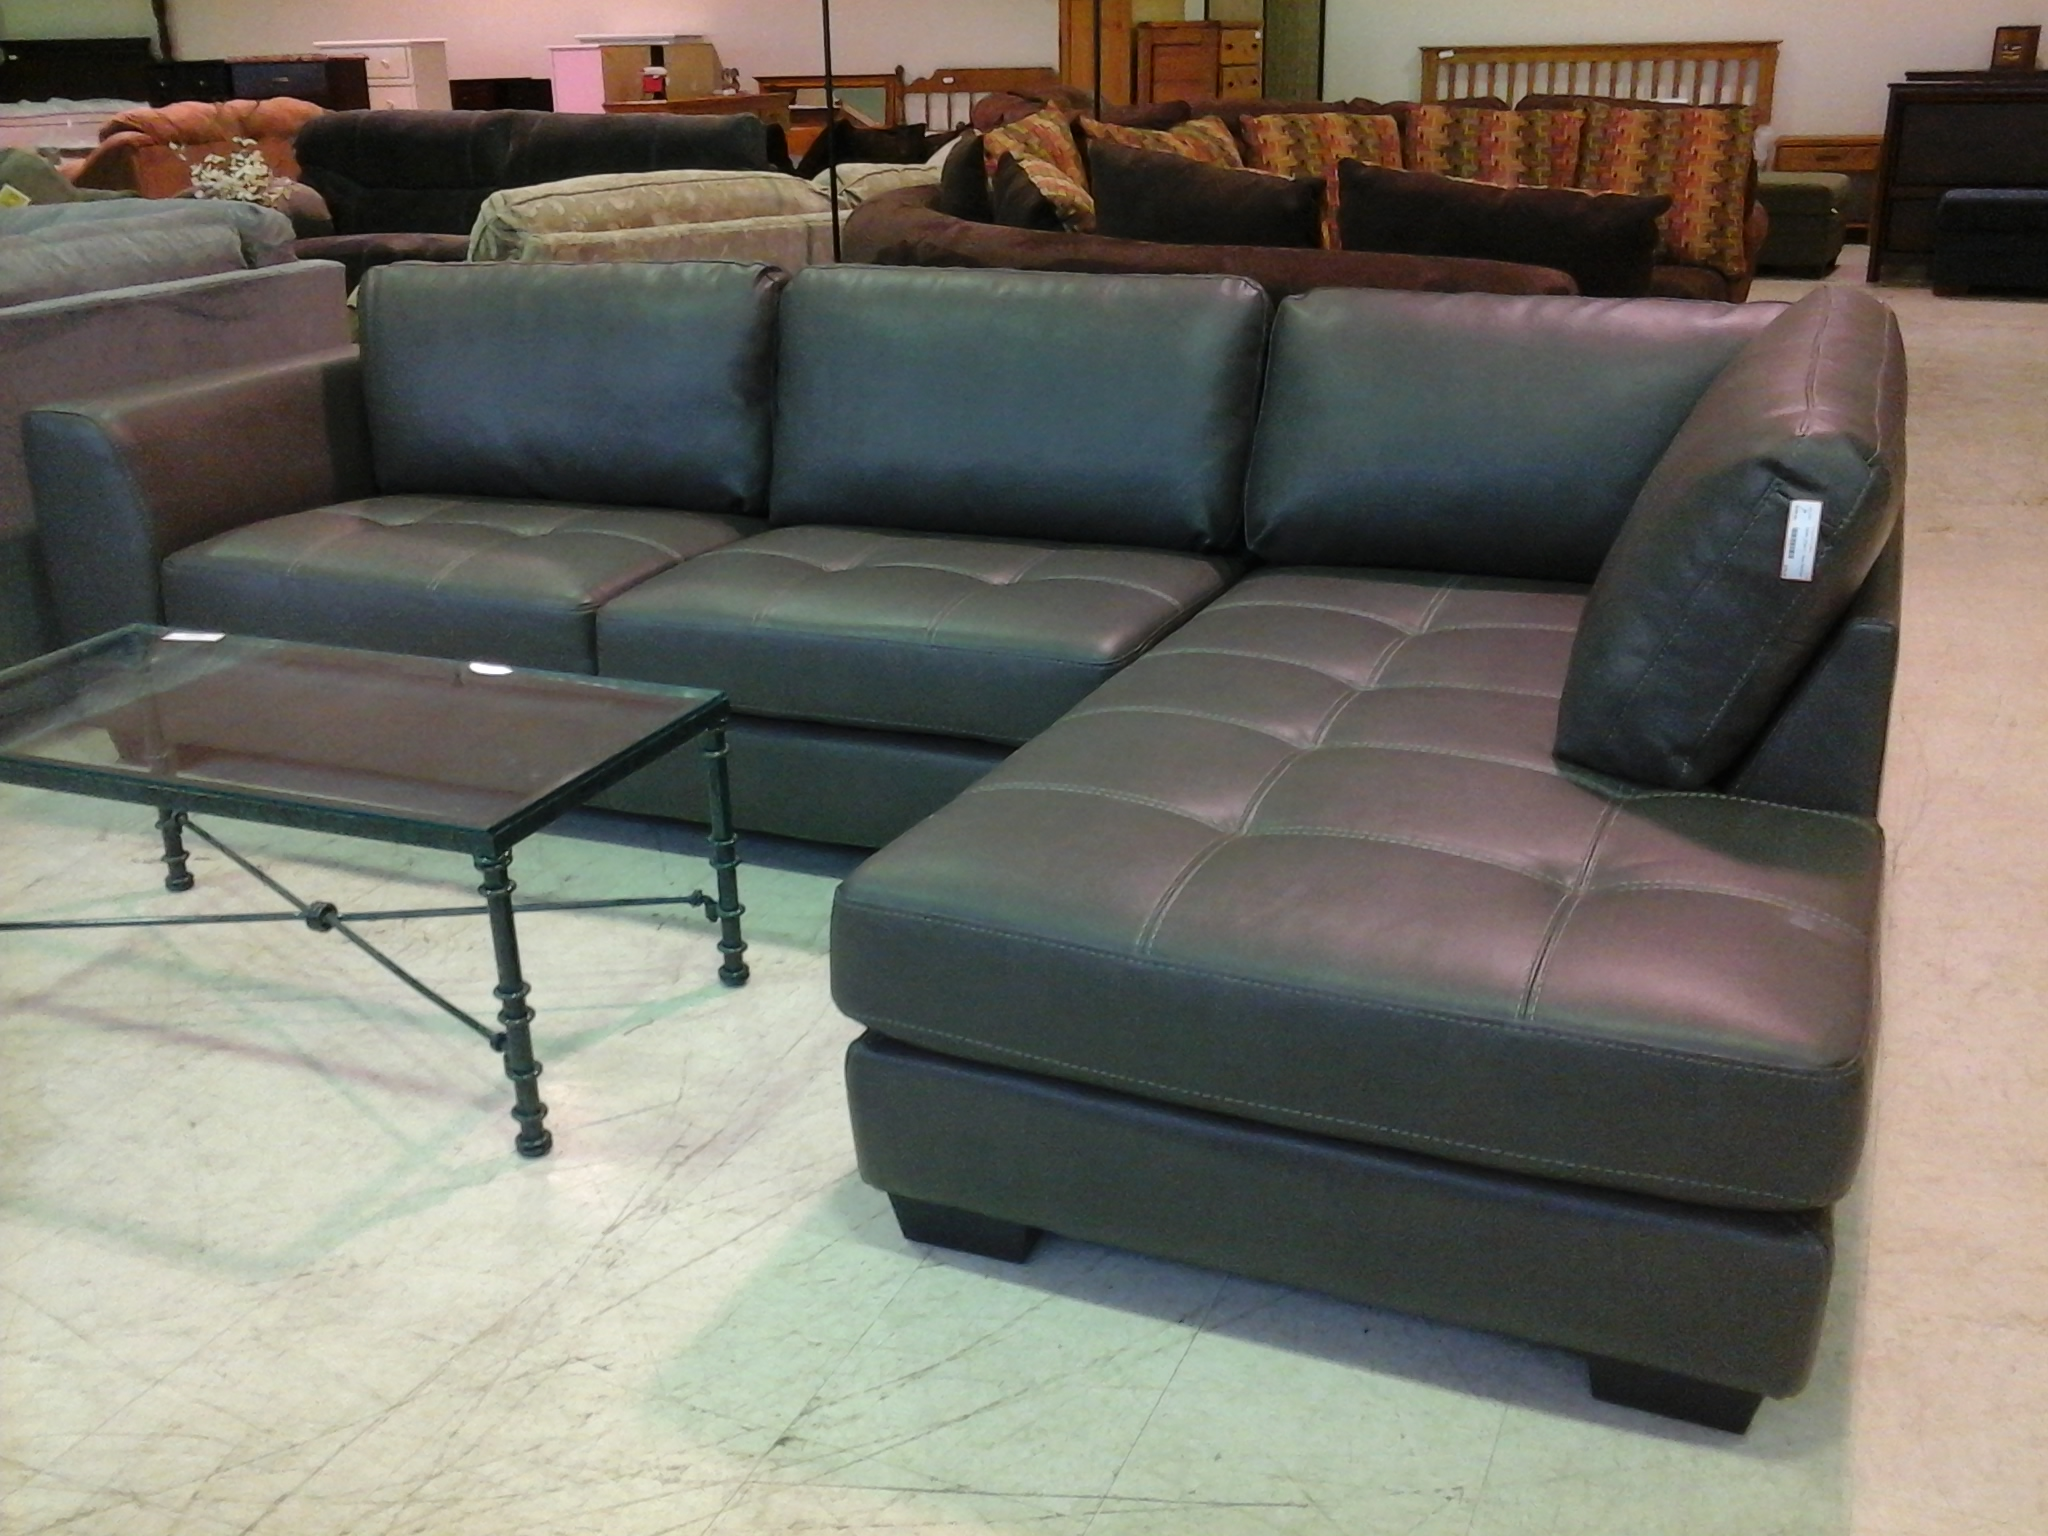 Classy black leather sectional for elegant living room design with black leather sectional sofa